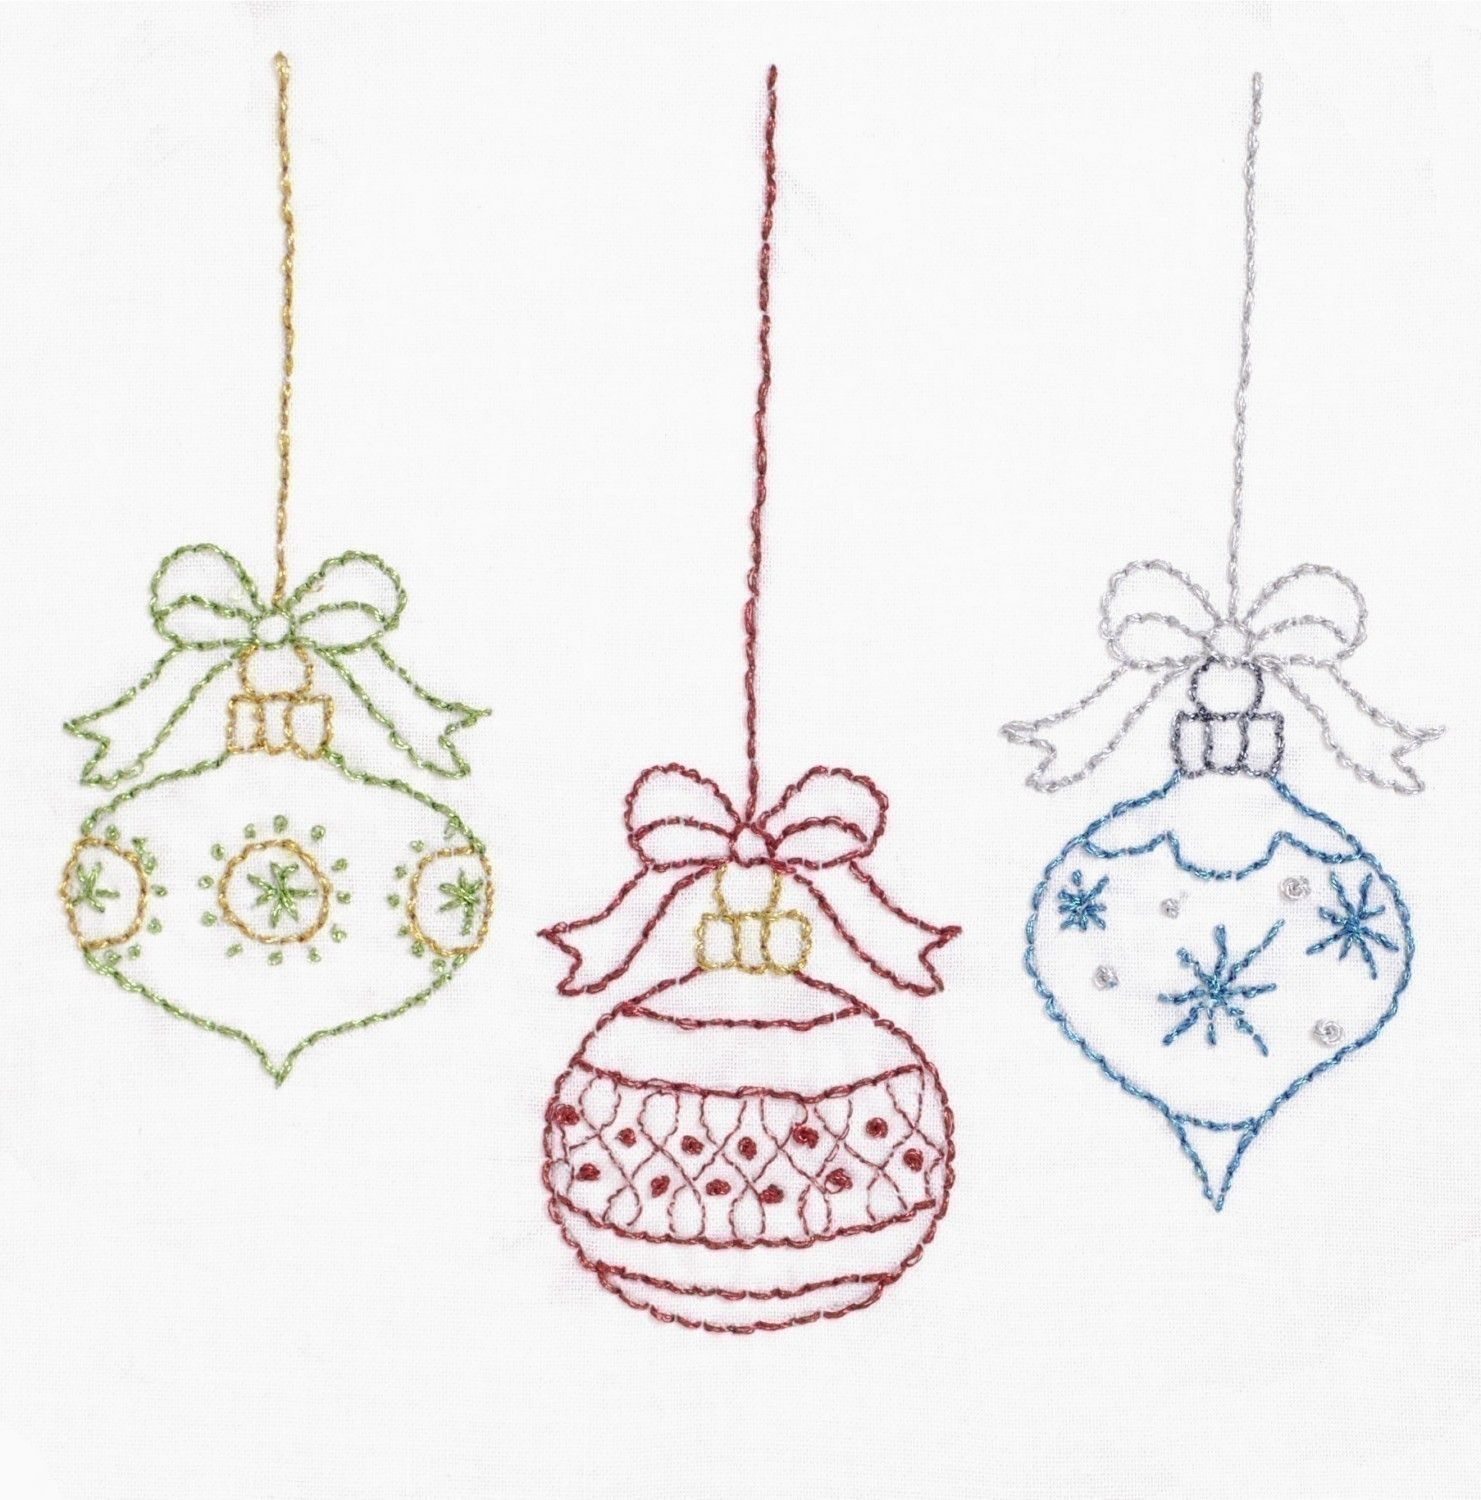 Christmas Embroidery Pattern Merry Christmas Embroidery Pattern Christmas Embroidery Design ...